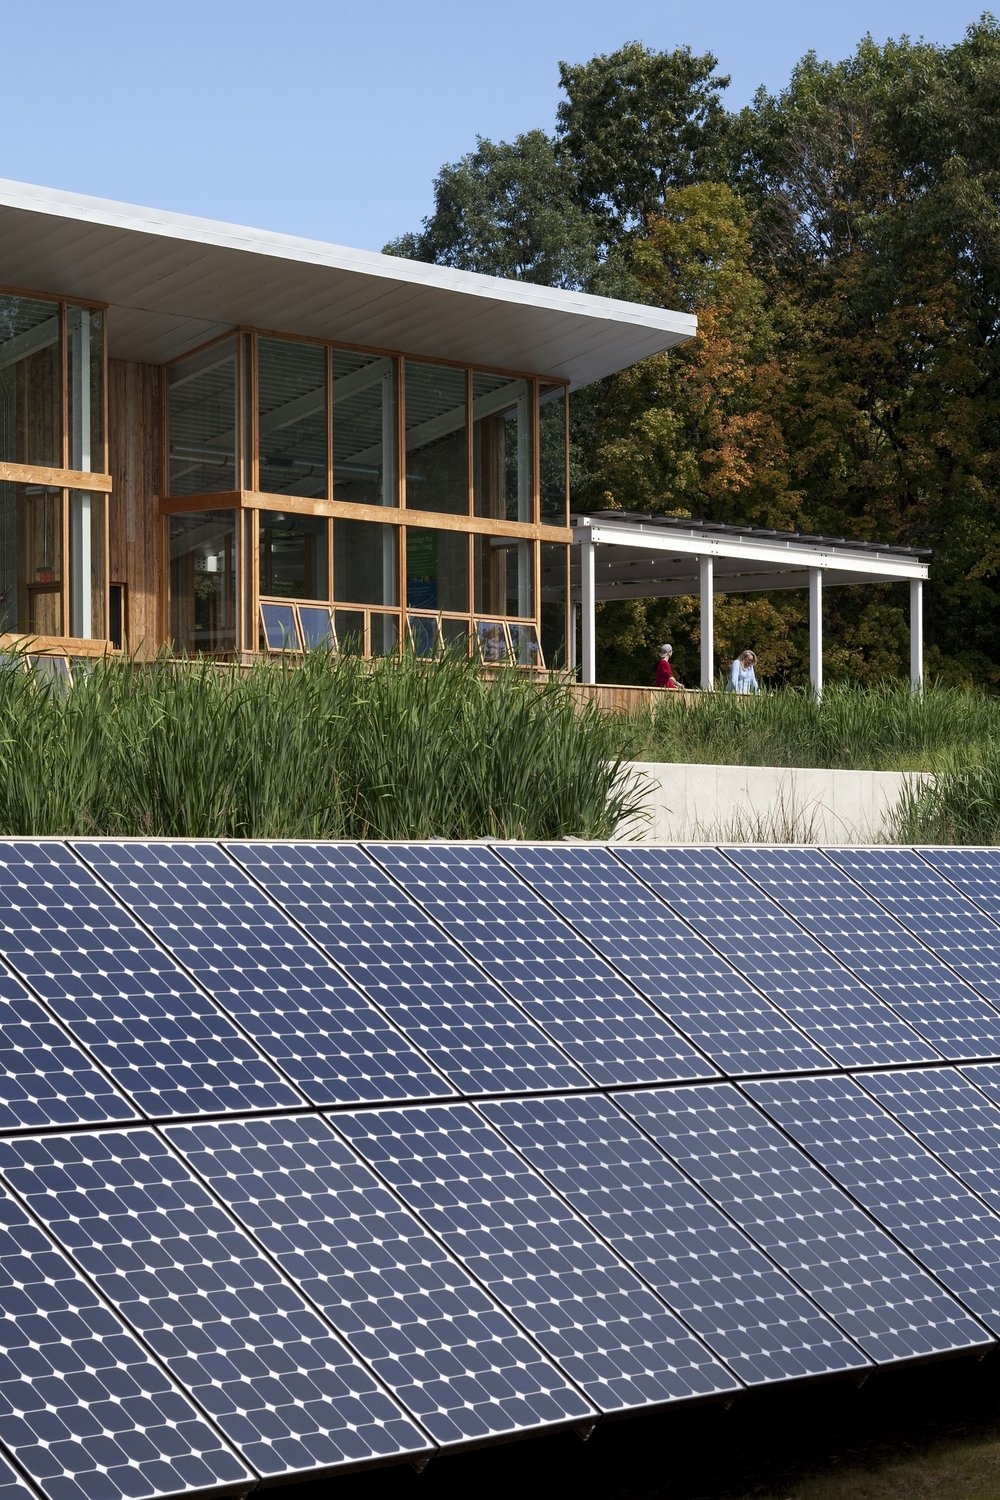 The Omega Institute plant is a net-zero building — which means that over the course of a year, it generates more electricity than it consumes. Photo by Farshid Assassi